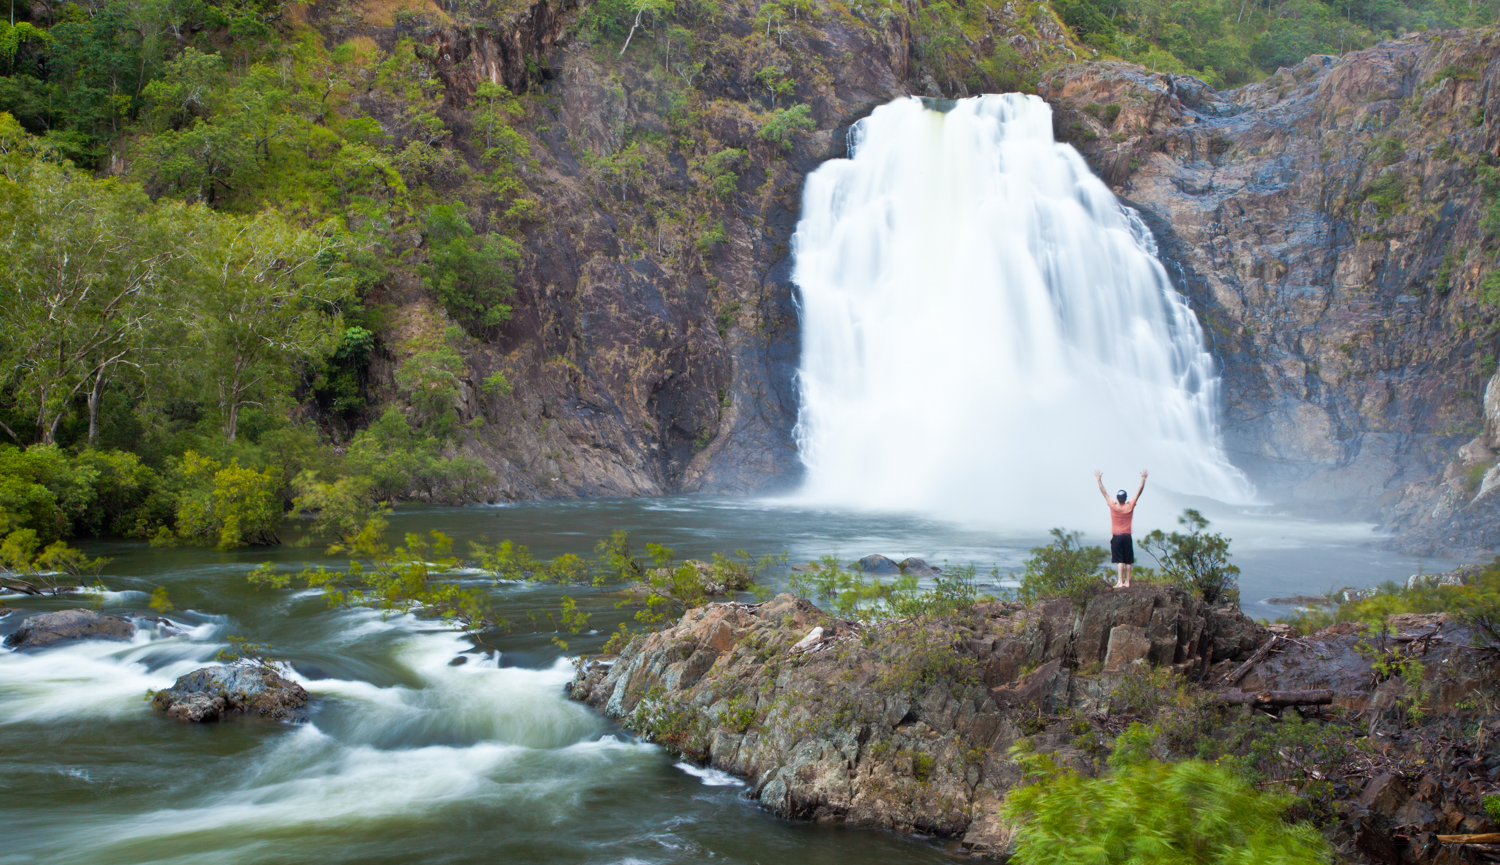 A figure stands in front of waterfall with arms raised